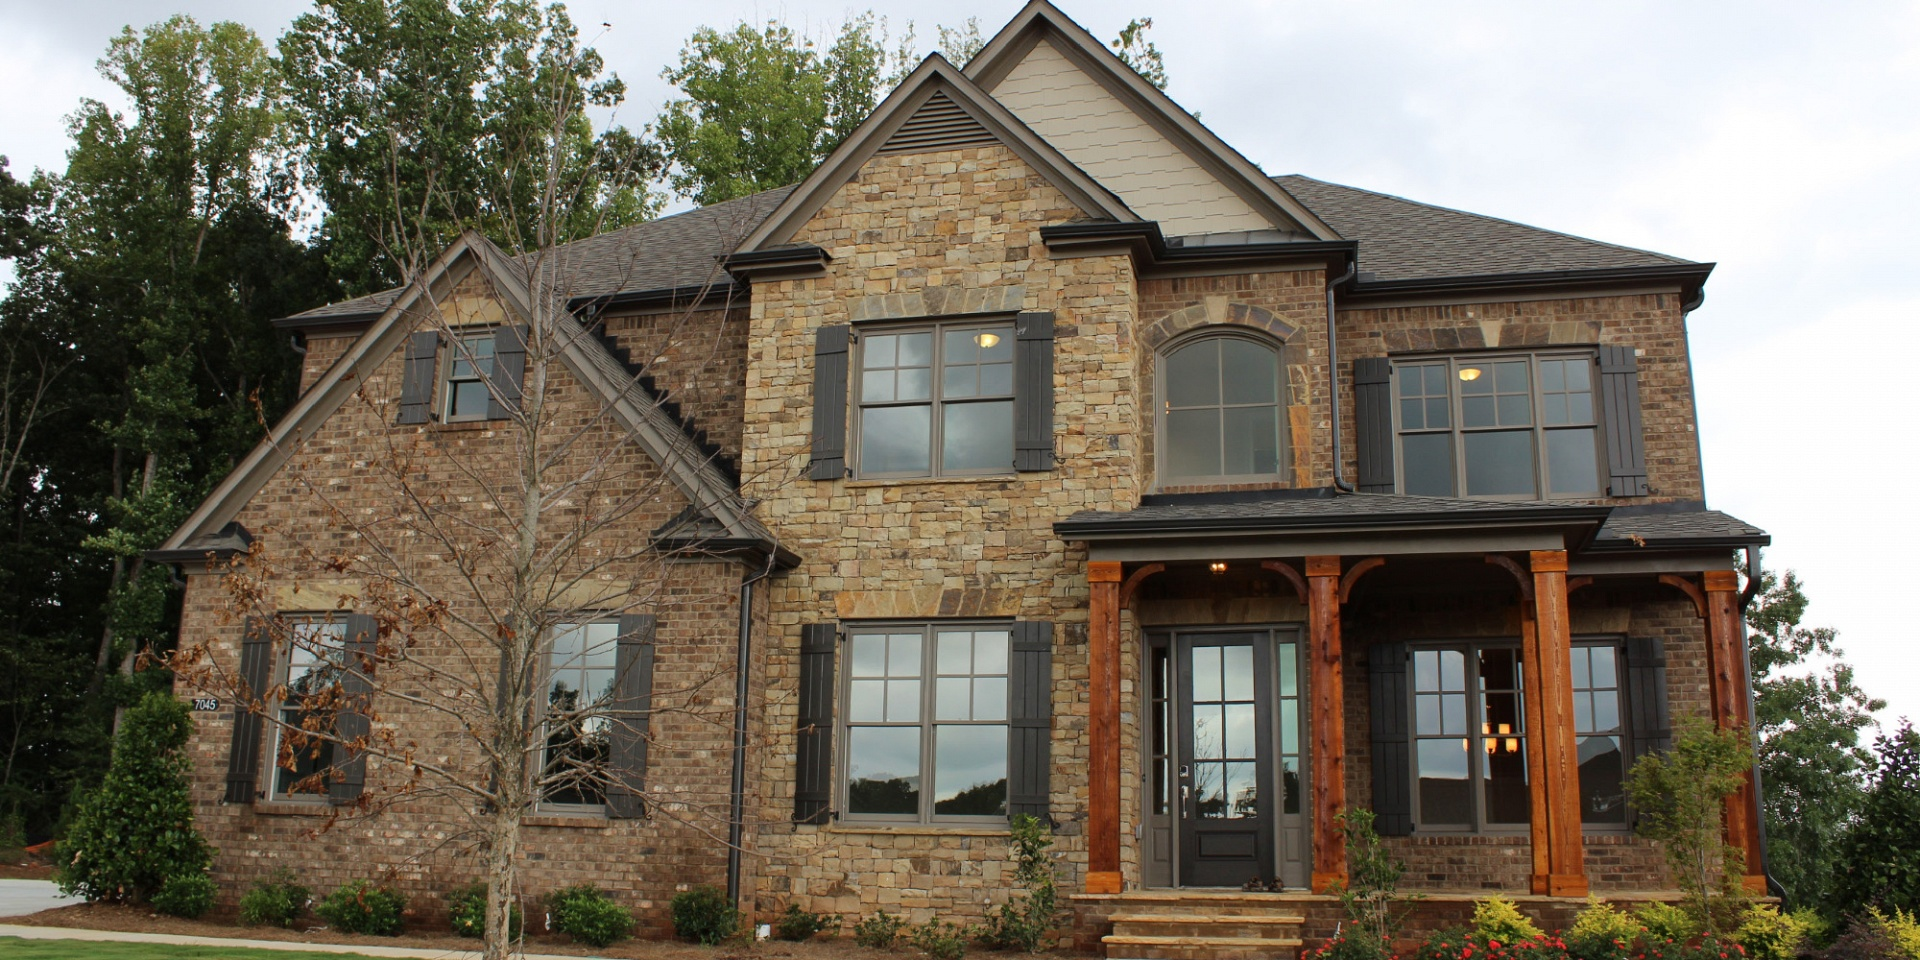 morrison county singles Get details of 15255 twin lakes road, your dream home in morrison county, 56345 - price, photos, videos, amenities, and local information contact our realtors today.